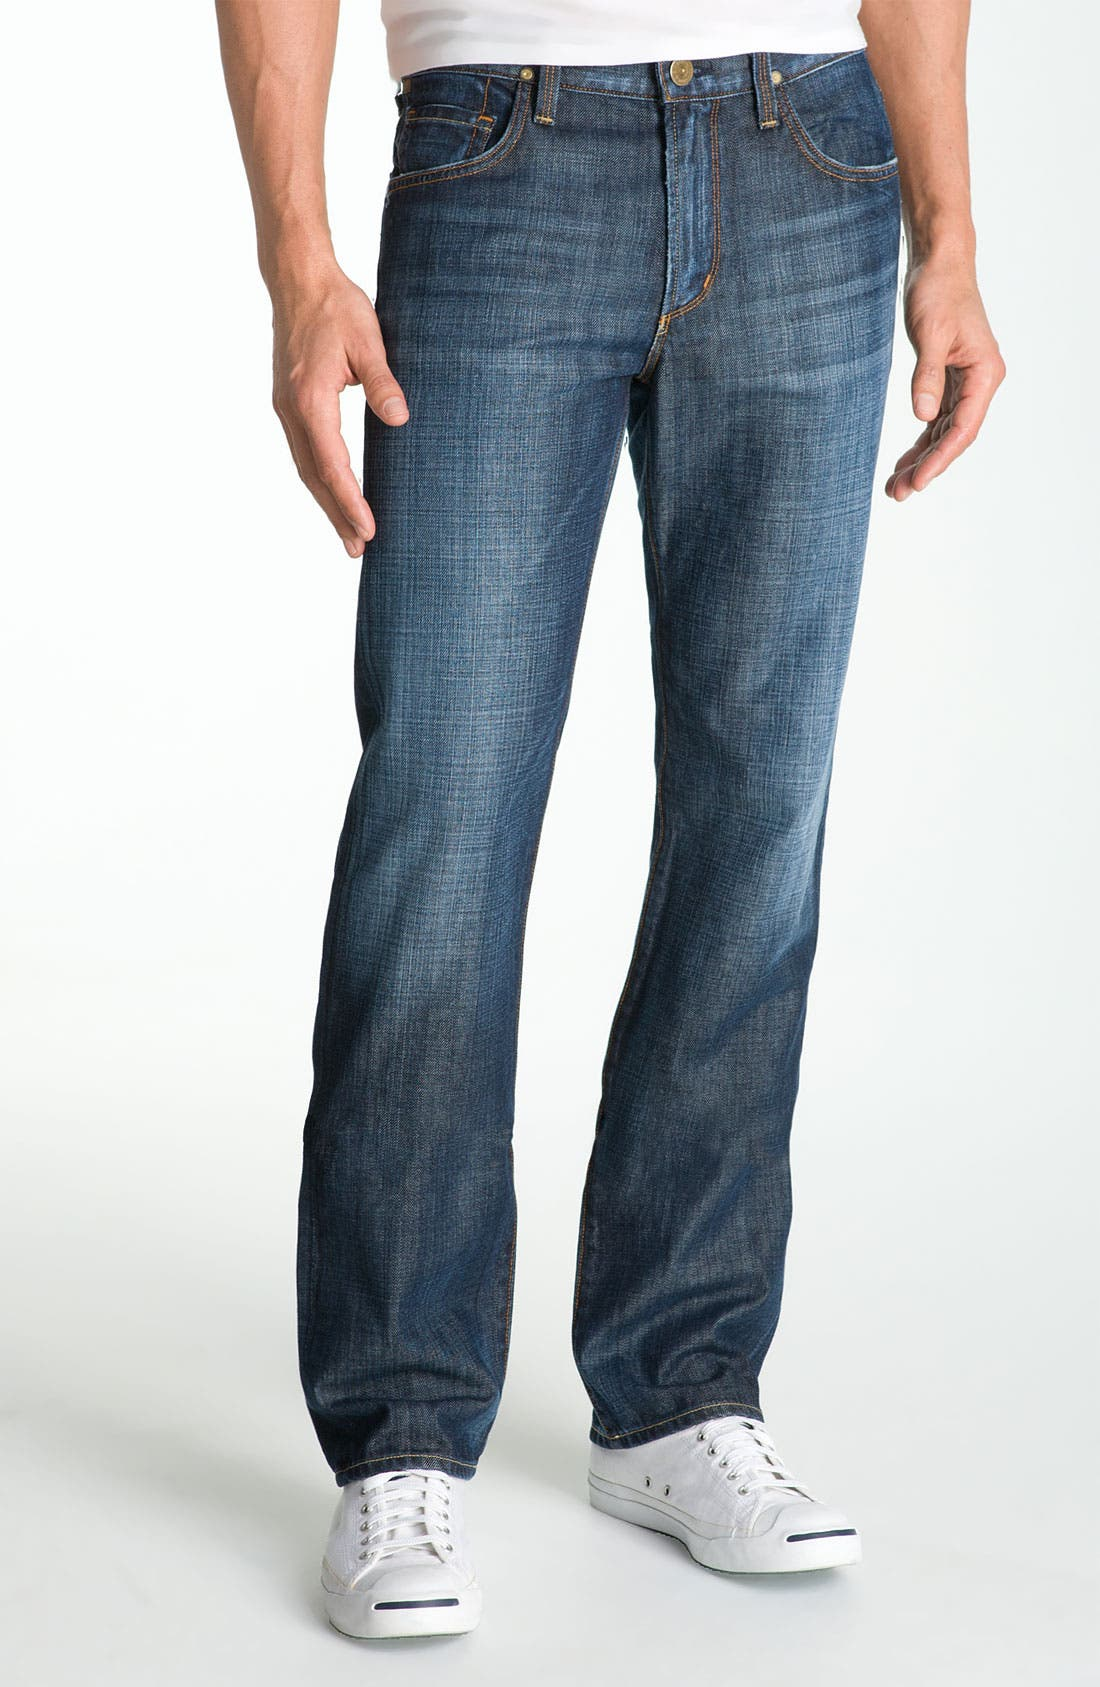 Main Image - Citizens of Humanity 'Sid' Straight Leg Jeans (Pacific Ocean) (Tall)